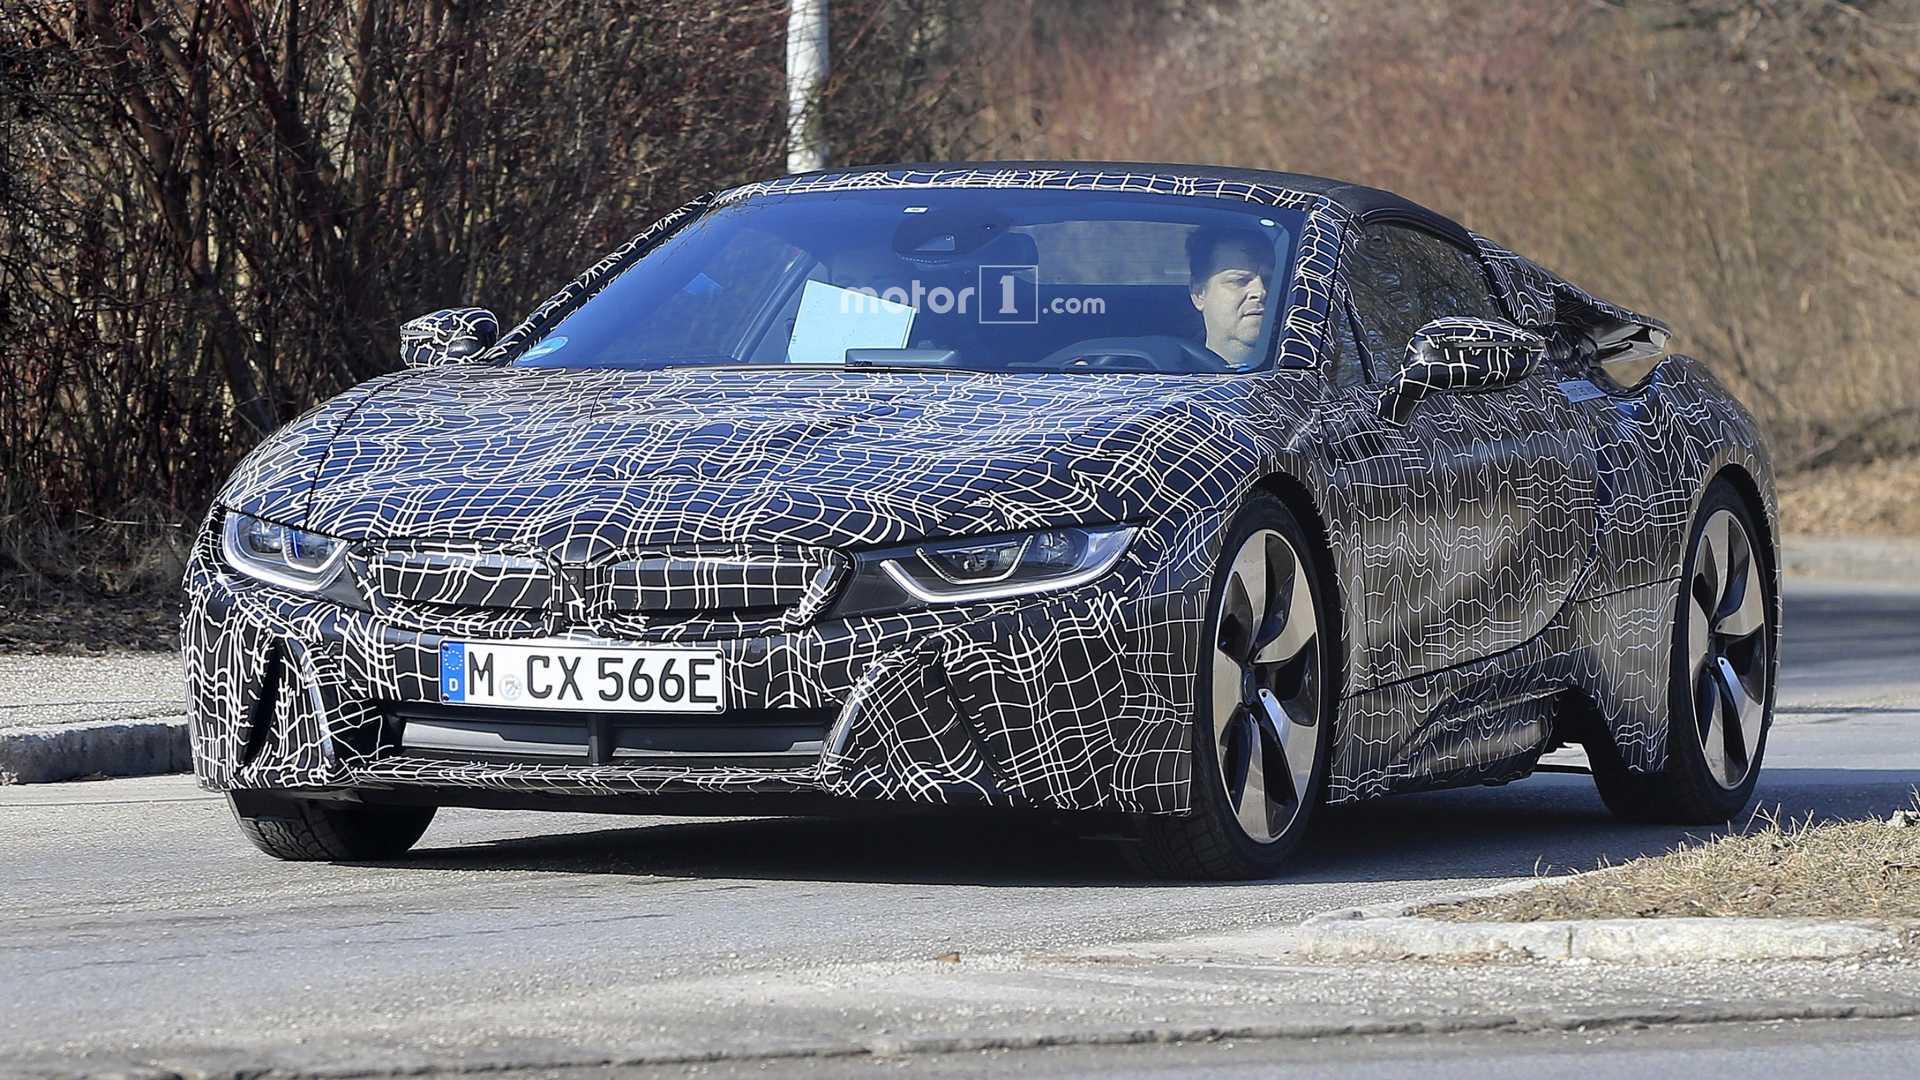 Bmw I8 Roadster Reveals Soft Top New Headlights In Teaser Video